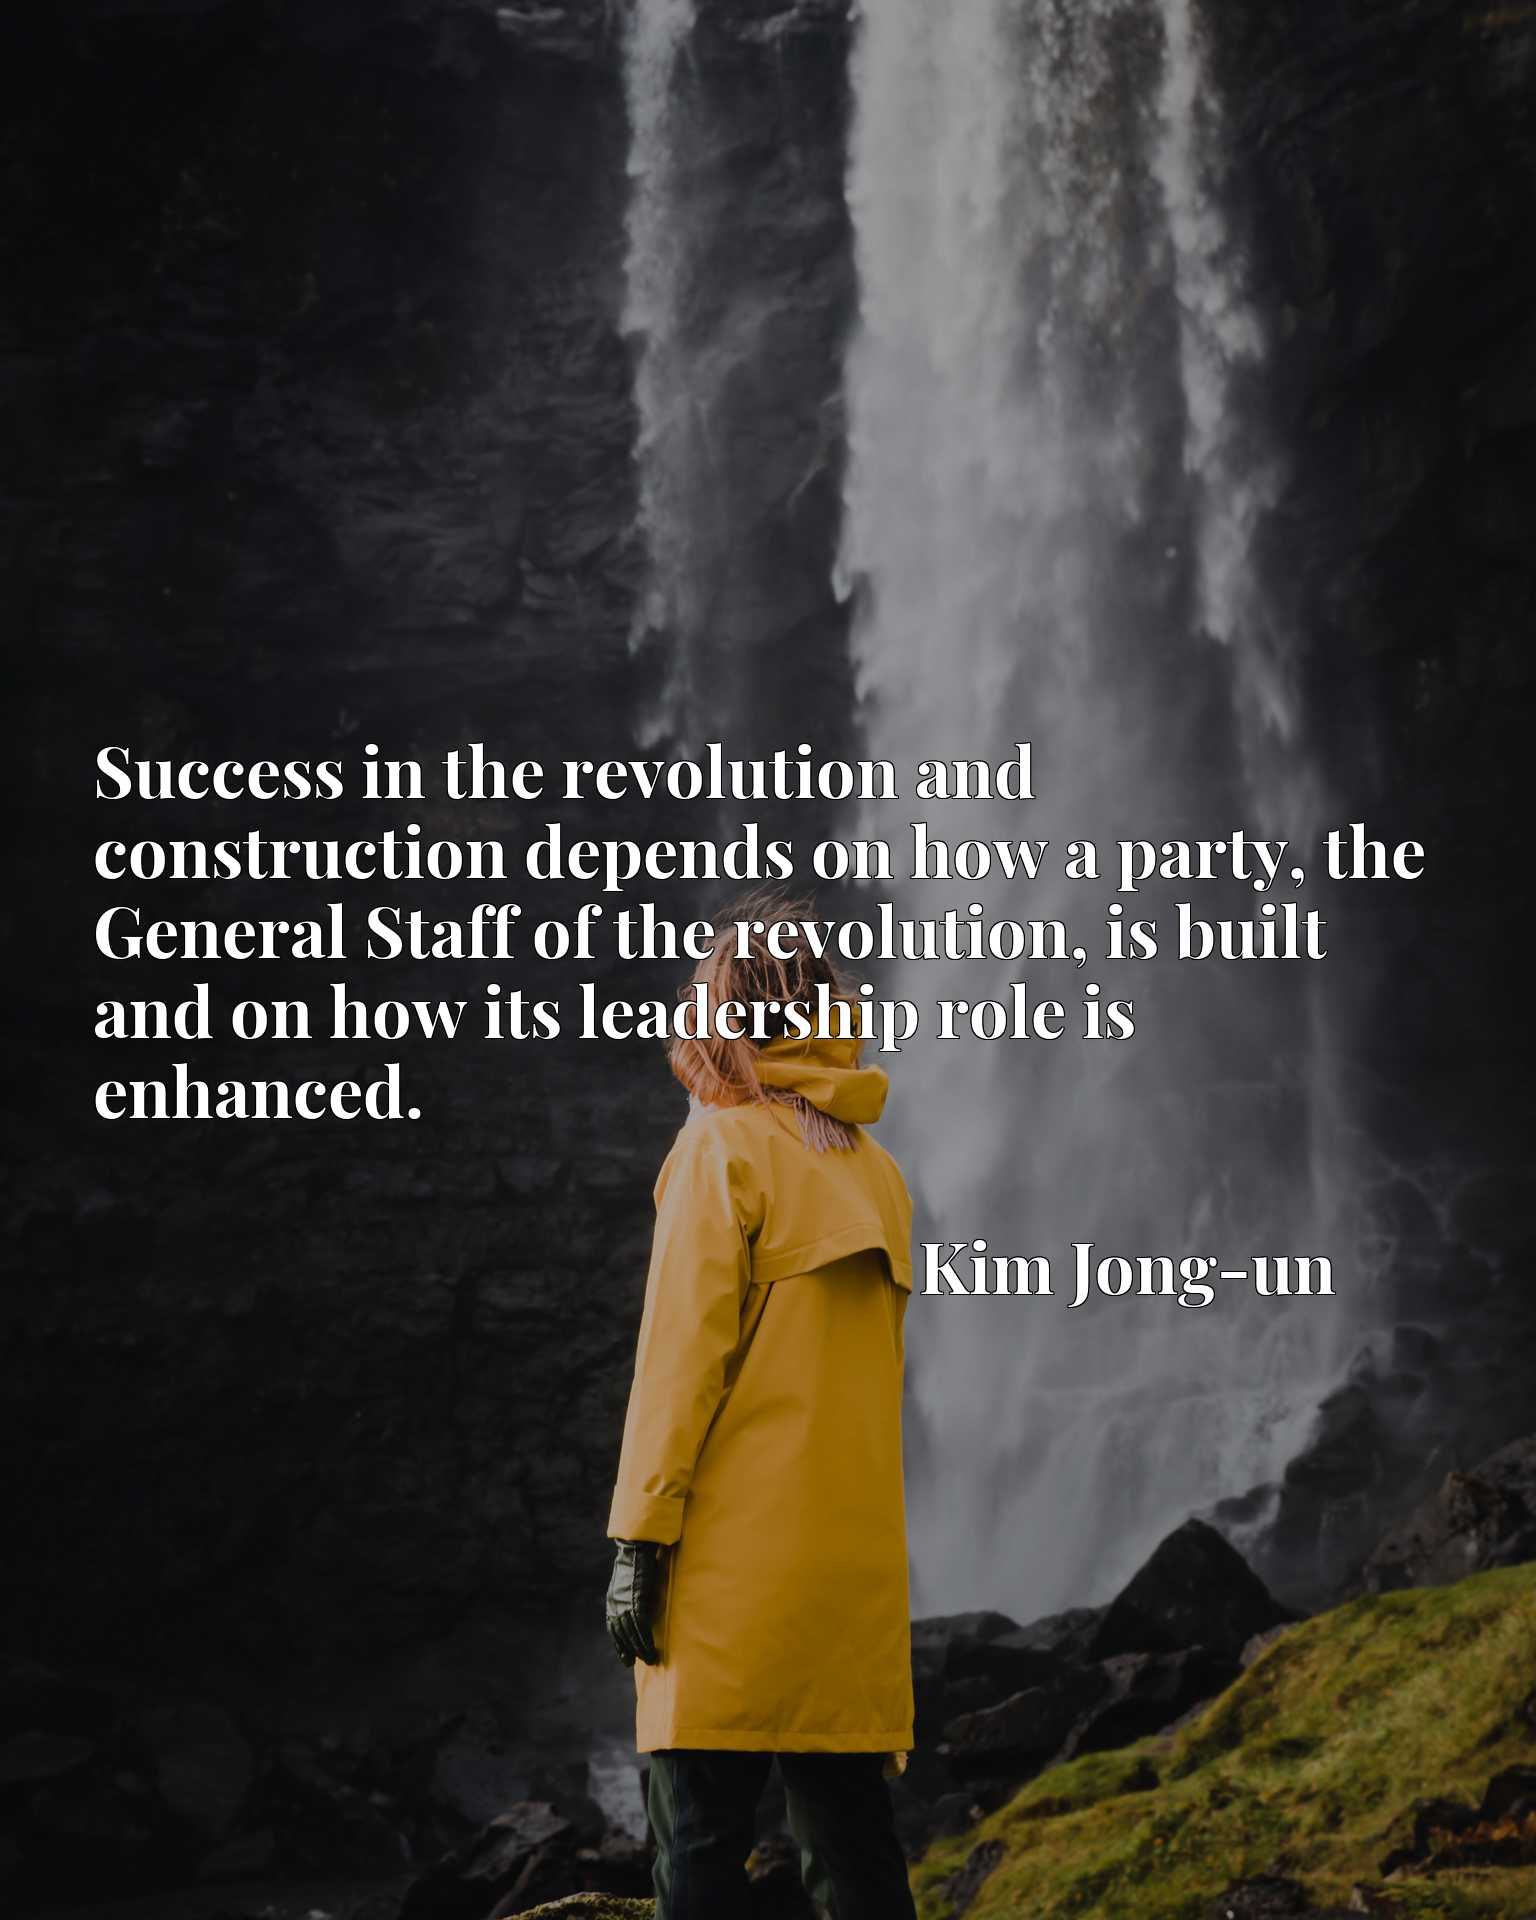 Success in the revolution and construction depends on how a party, the General Staff of the revolution, is built and on how its leadership role is enhanced.